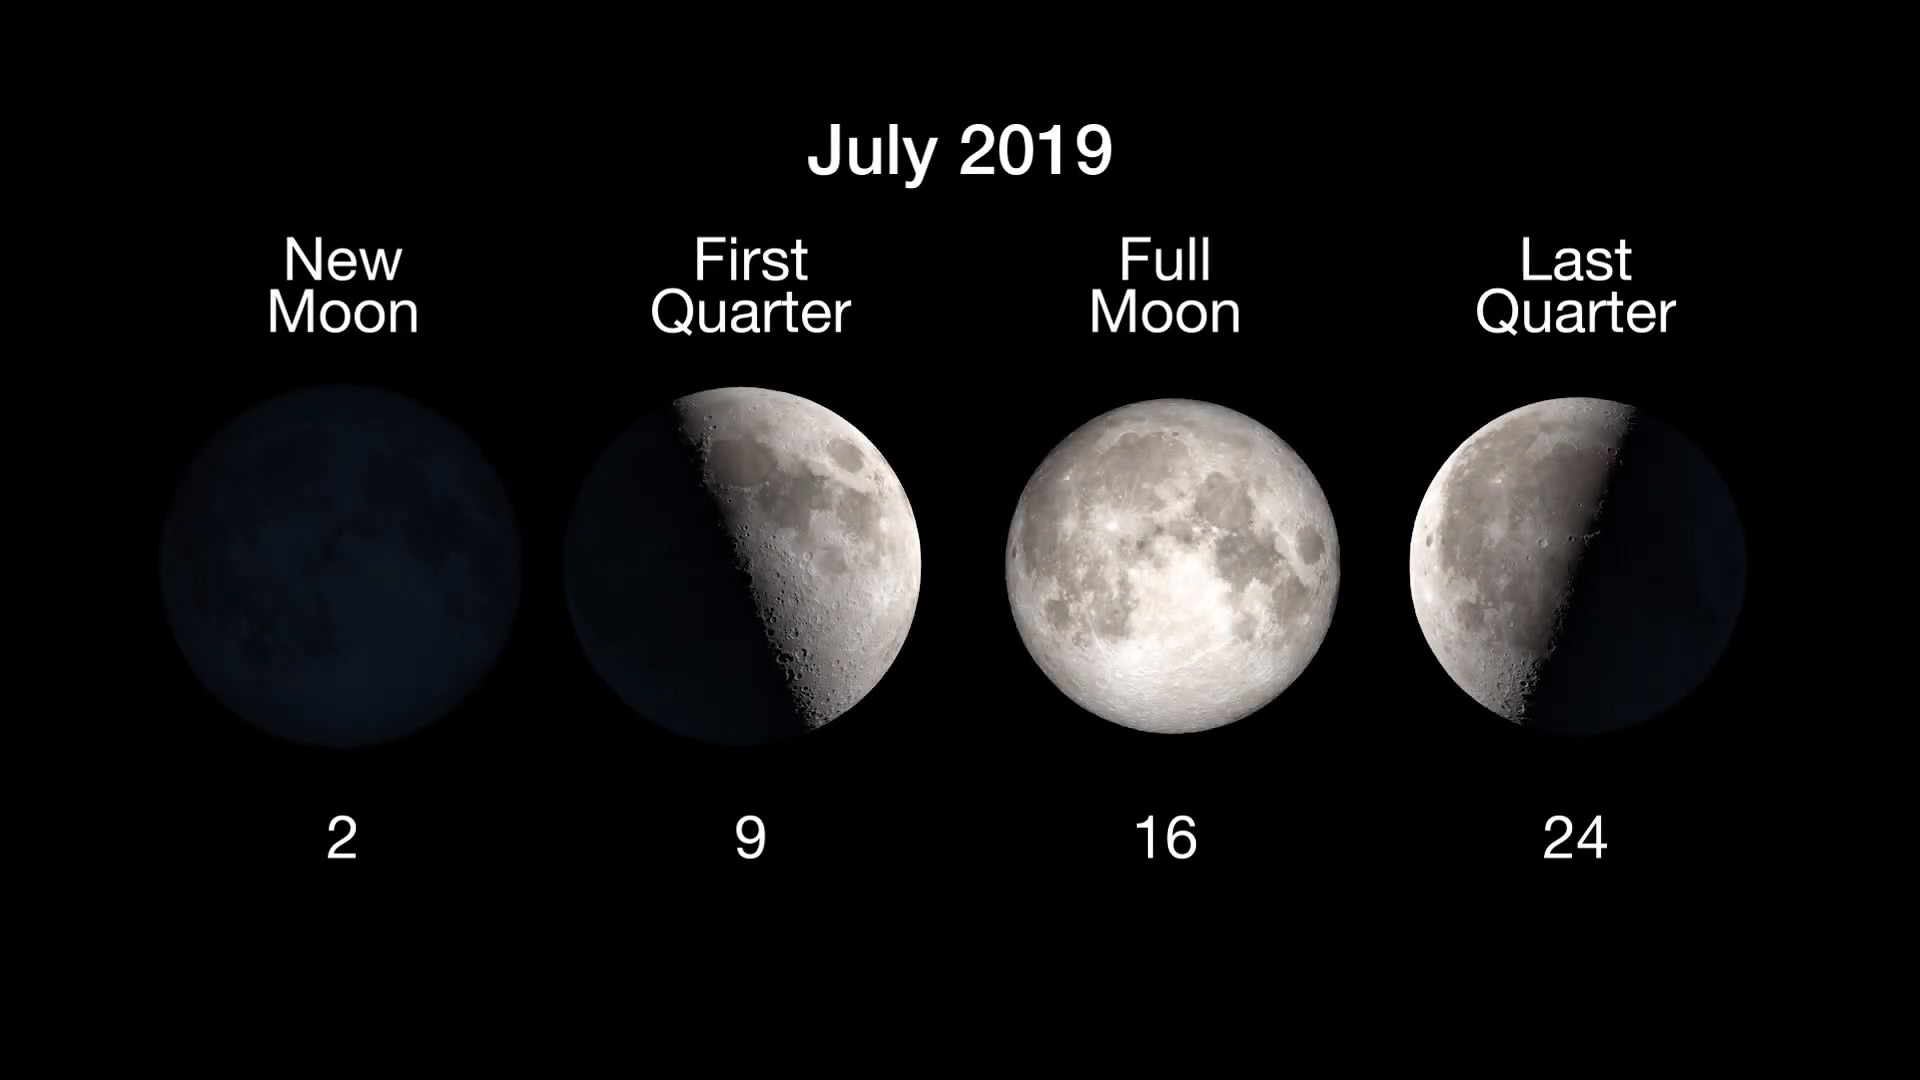 Moon phases July 2019: New Moon on July 2, first quarter on July 9, full Moon on July 16 and last quarter on July 24.